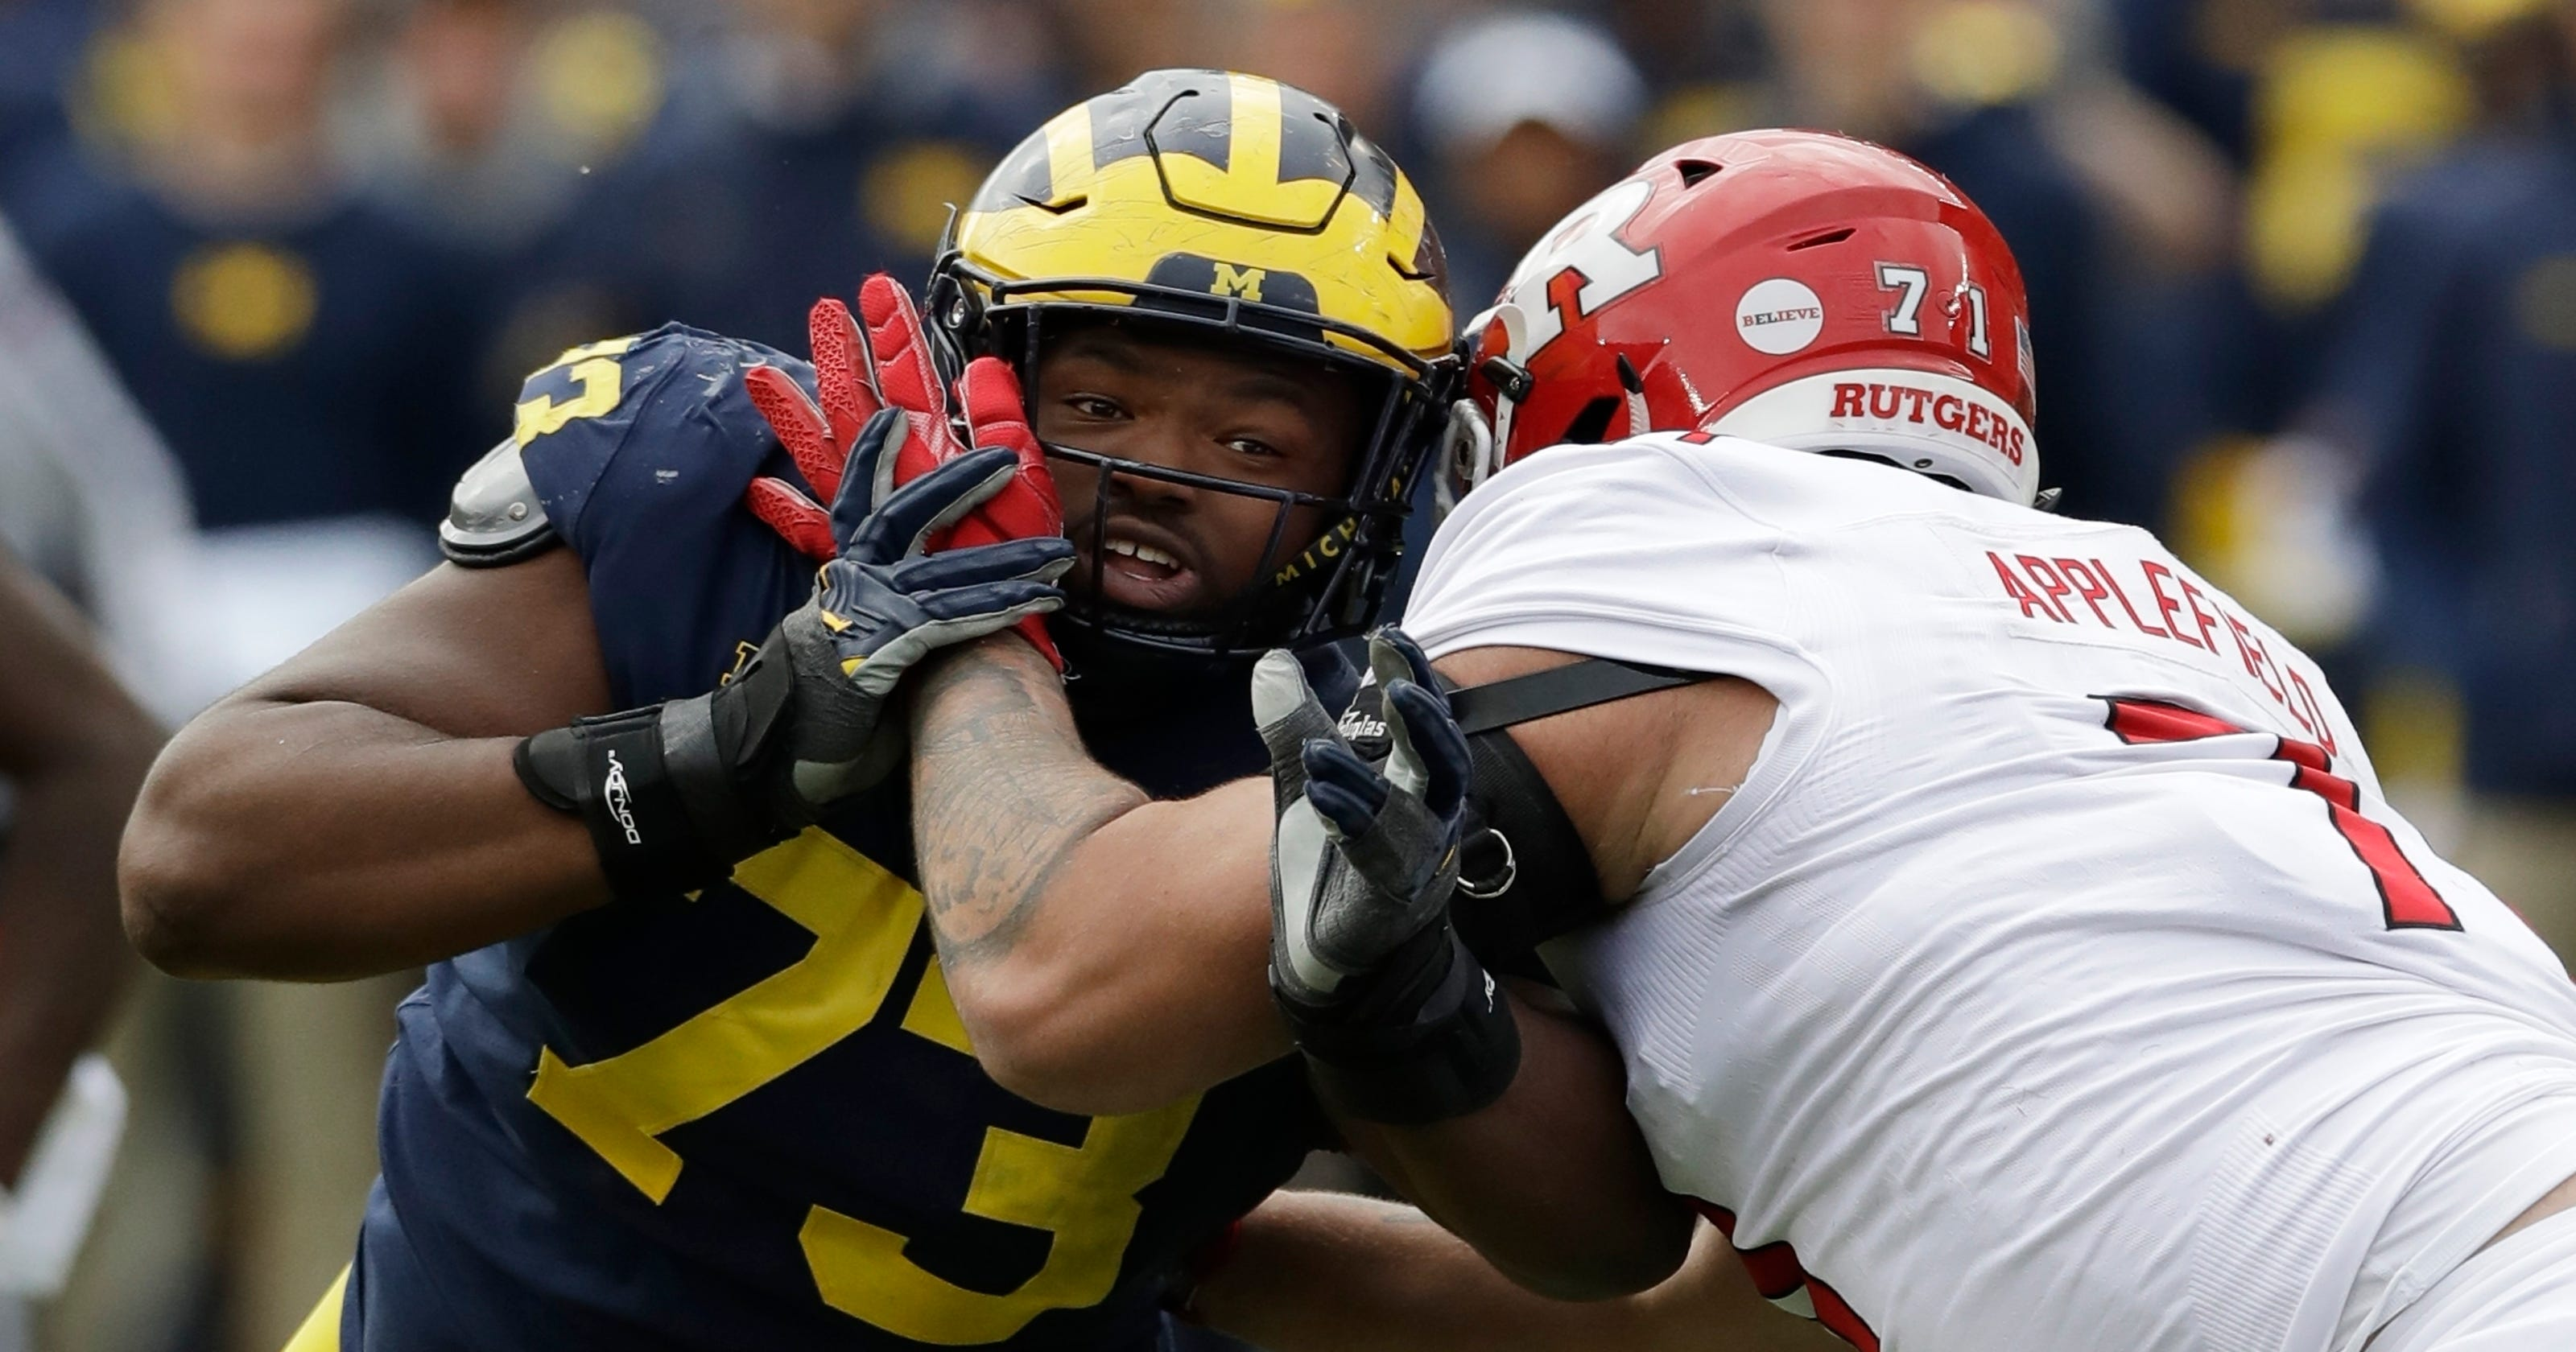 648a62e8 Maurice Hurst passes Michigan Pro Day 'with flying colors'